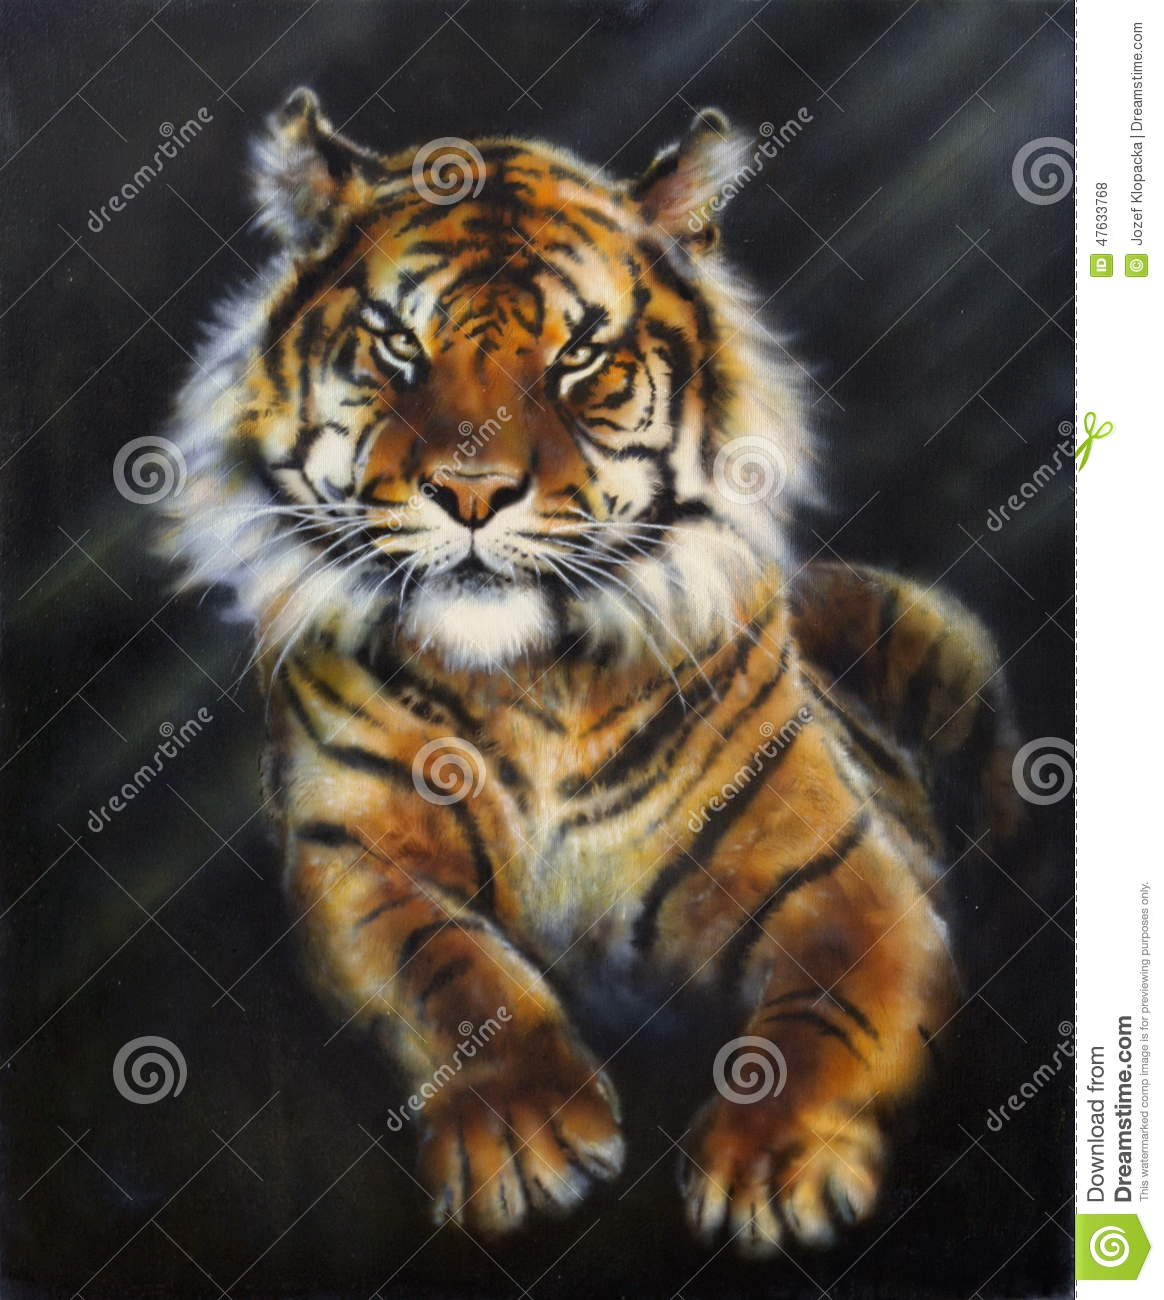 A Painting Of A Tiger On Black Background Stock